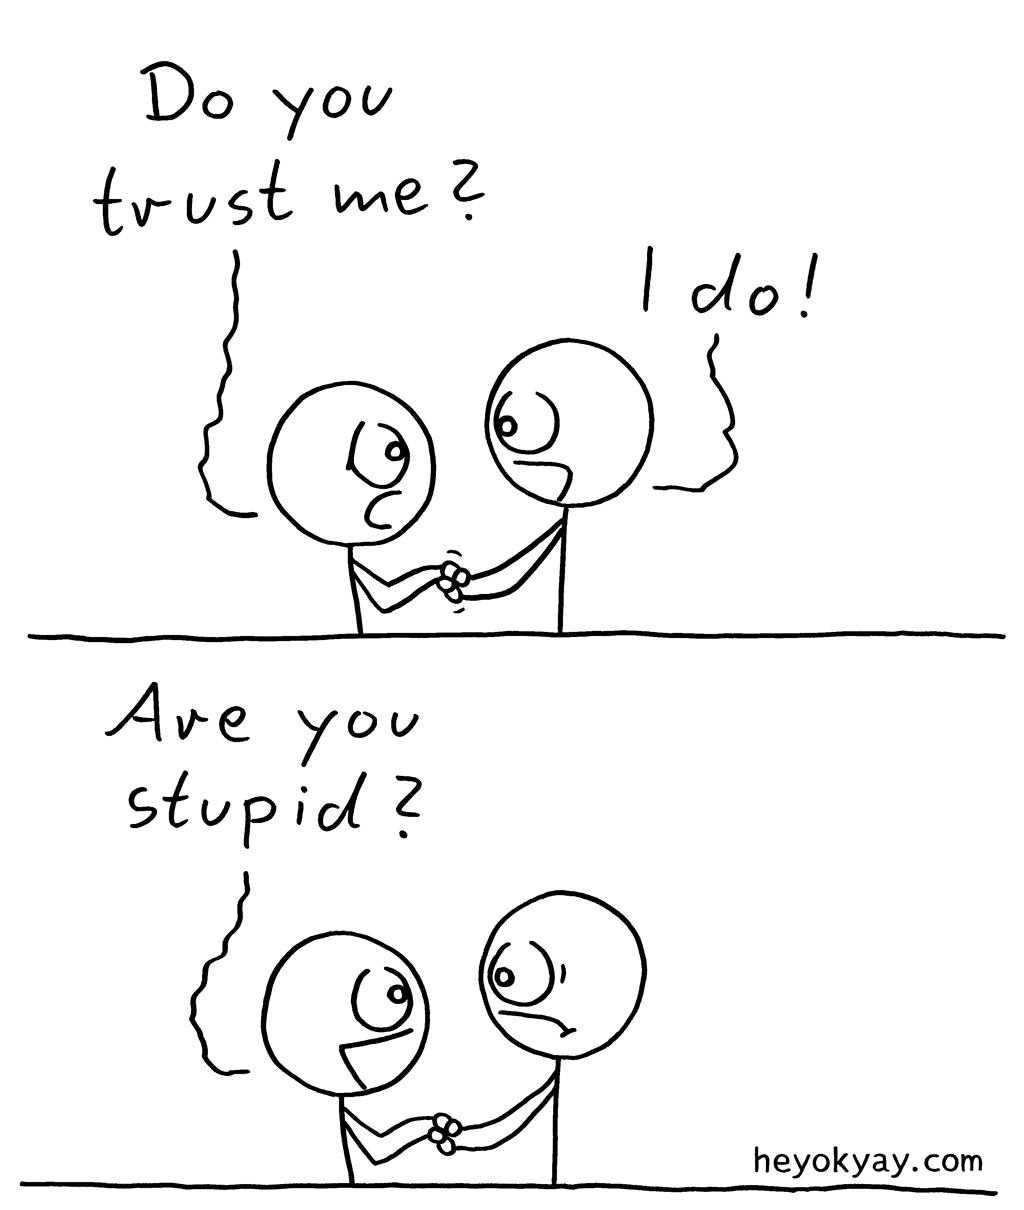 Trust | Hey ok yay? | Do you trust me? I do! Are you stupid? | Friendship, loyalty, betrayal